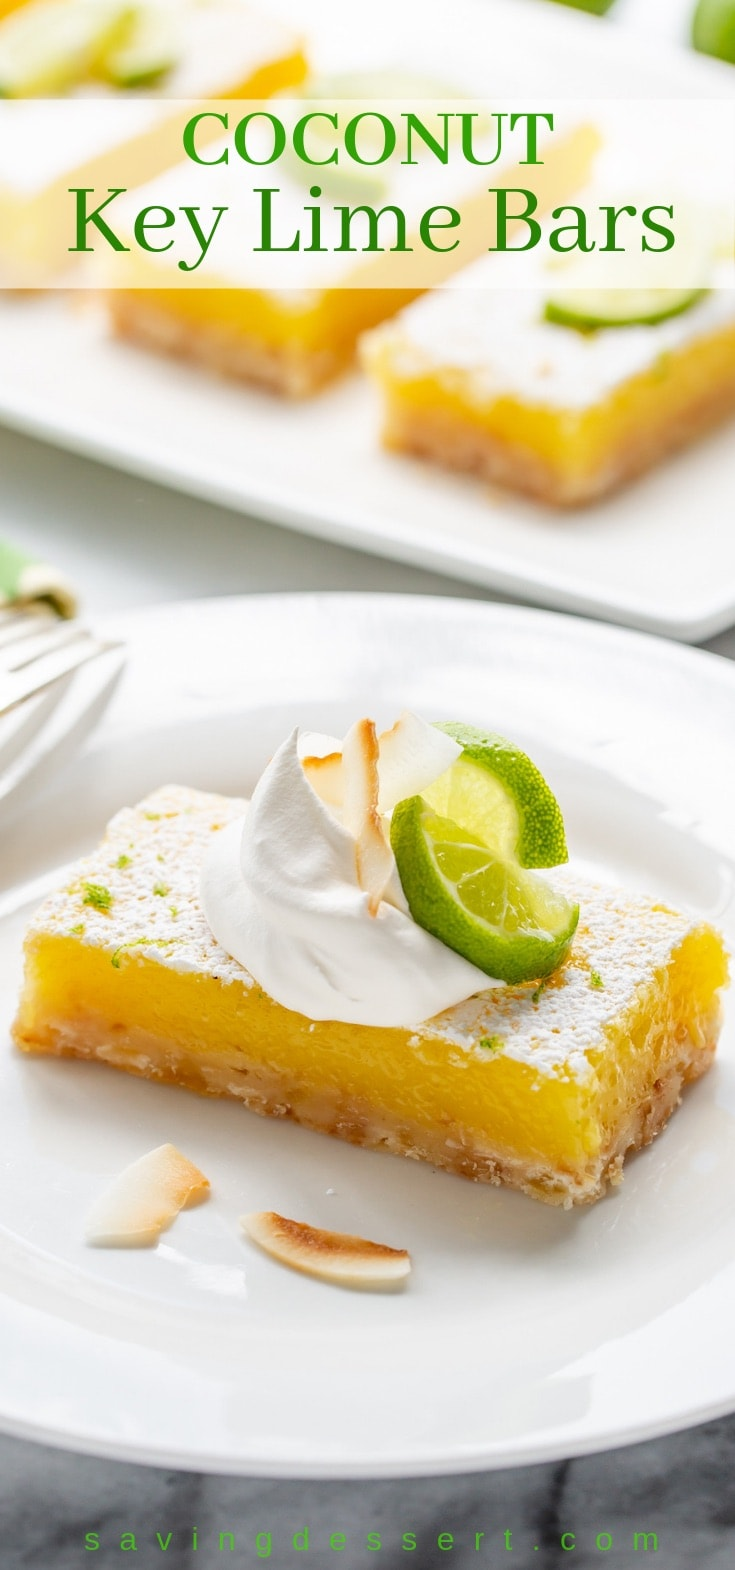 Coconut Key Lime Bars topped with lime wedges, toasted coconut and a dollop whipped cream